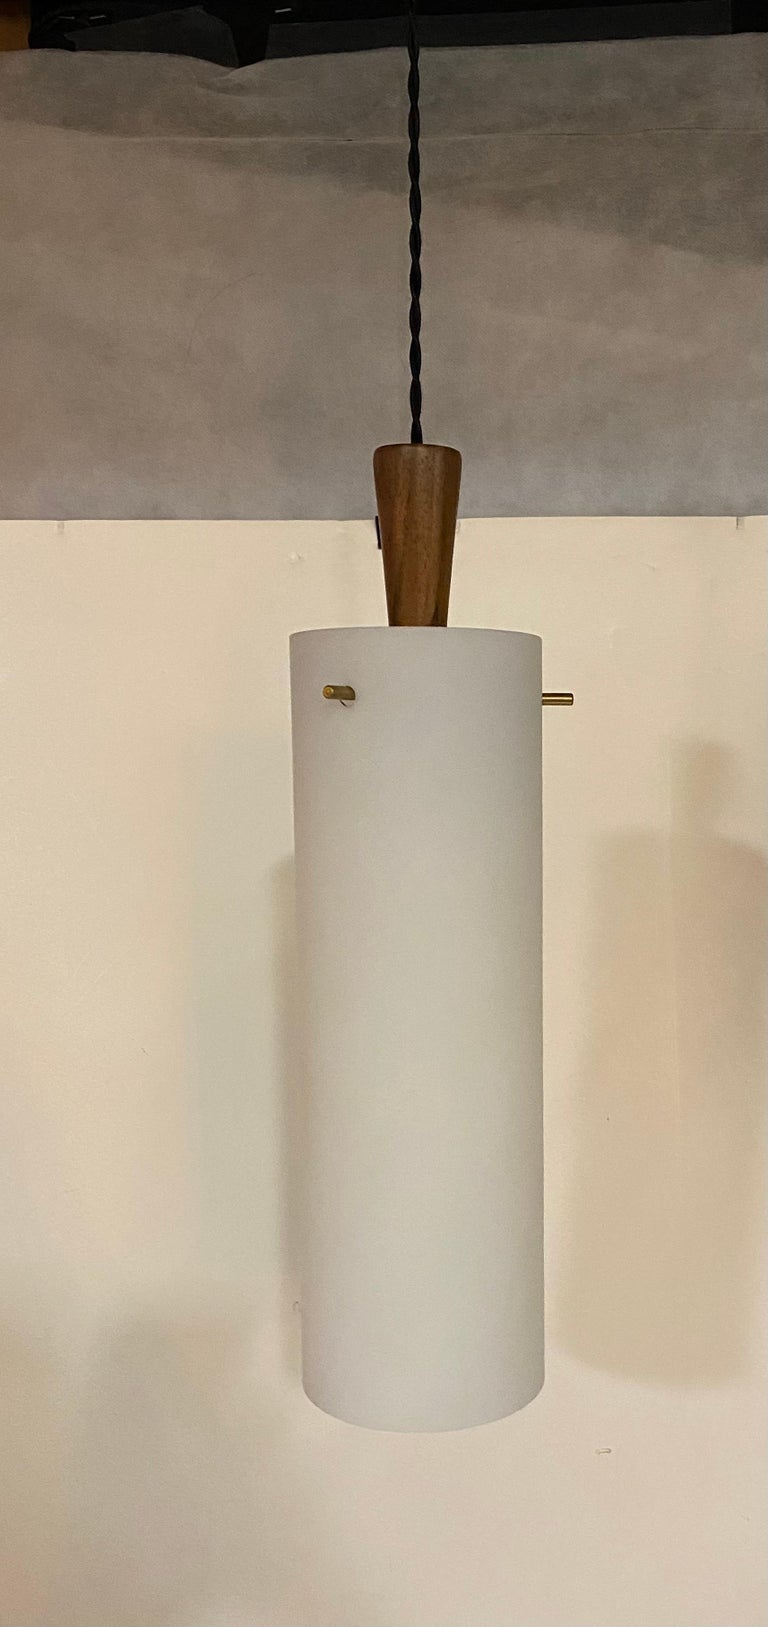 Norwegian Hadeland Frosted Glass, Brass and Wood Pendant Light Fixture For Sale